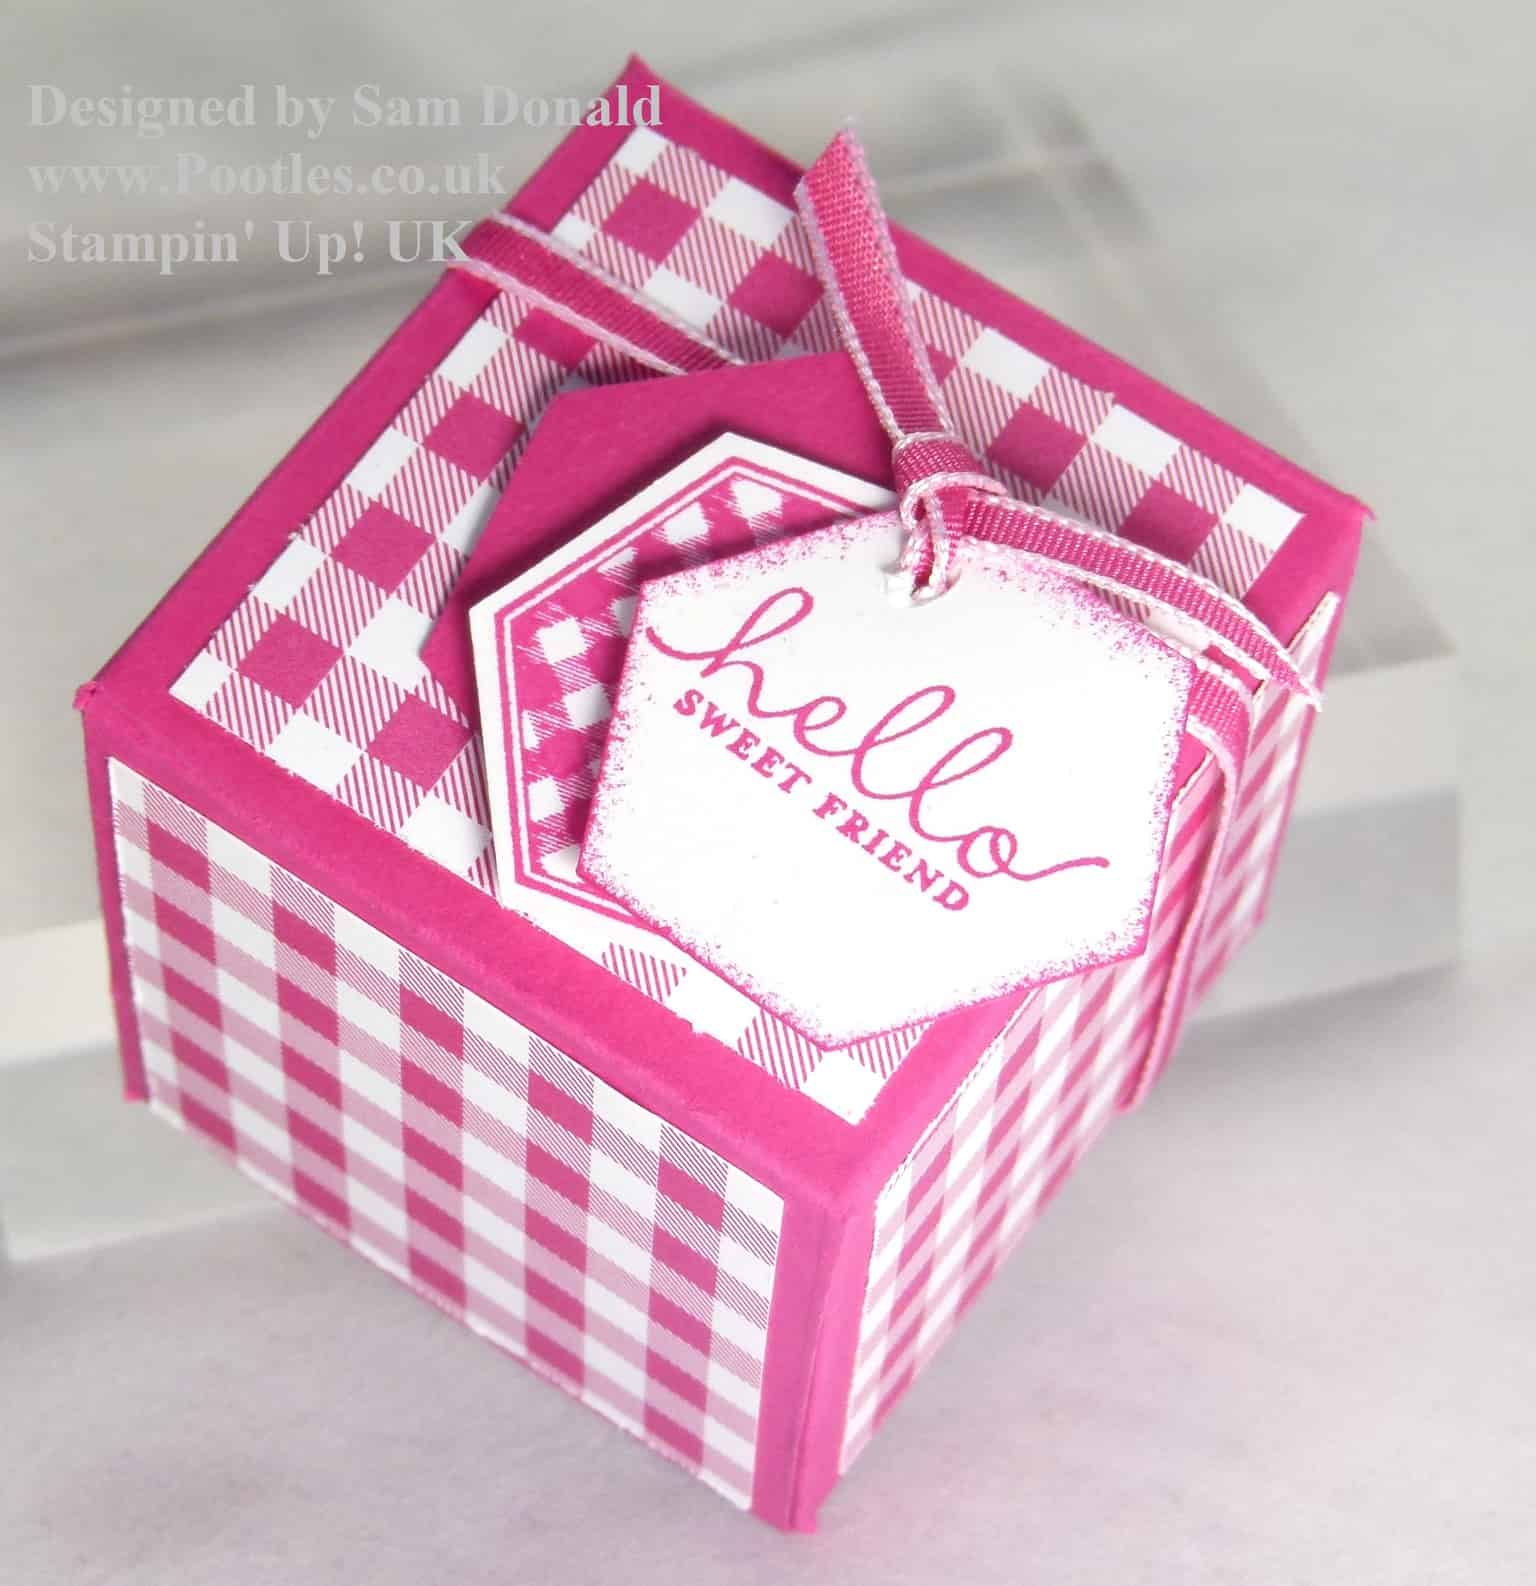 Pootles Stampin Up UK 2x2x2 Cube Fold Flat Favour Box